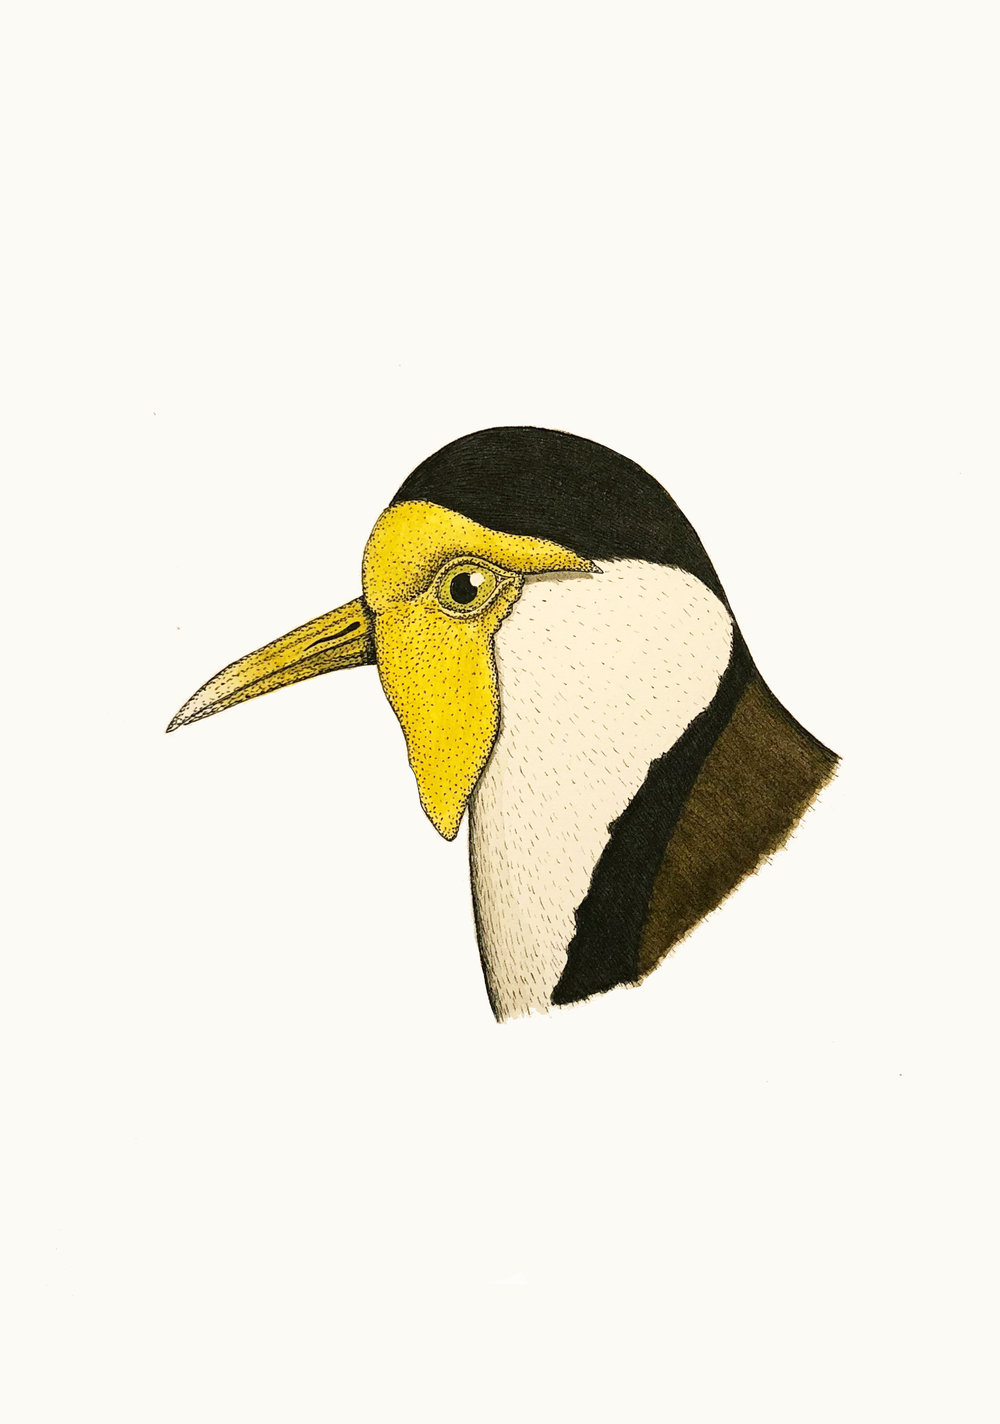 'Portrait of a Masked Lapwing'